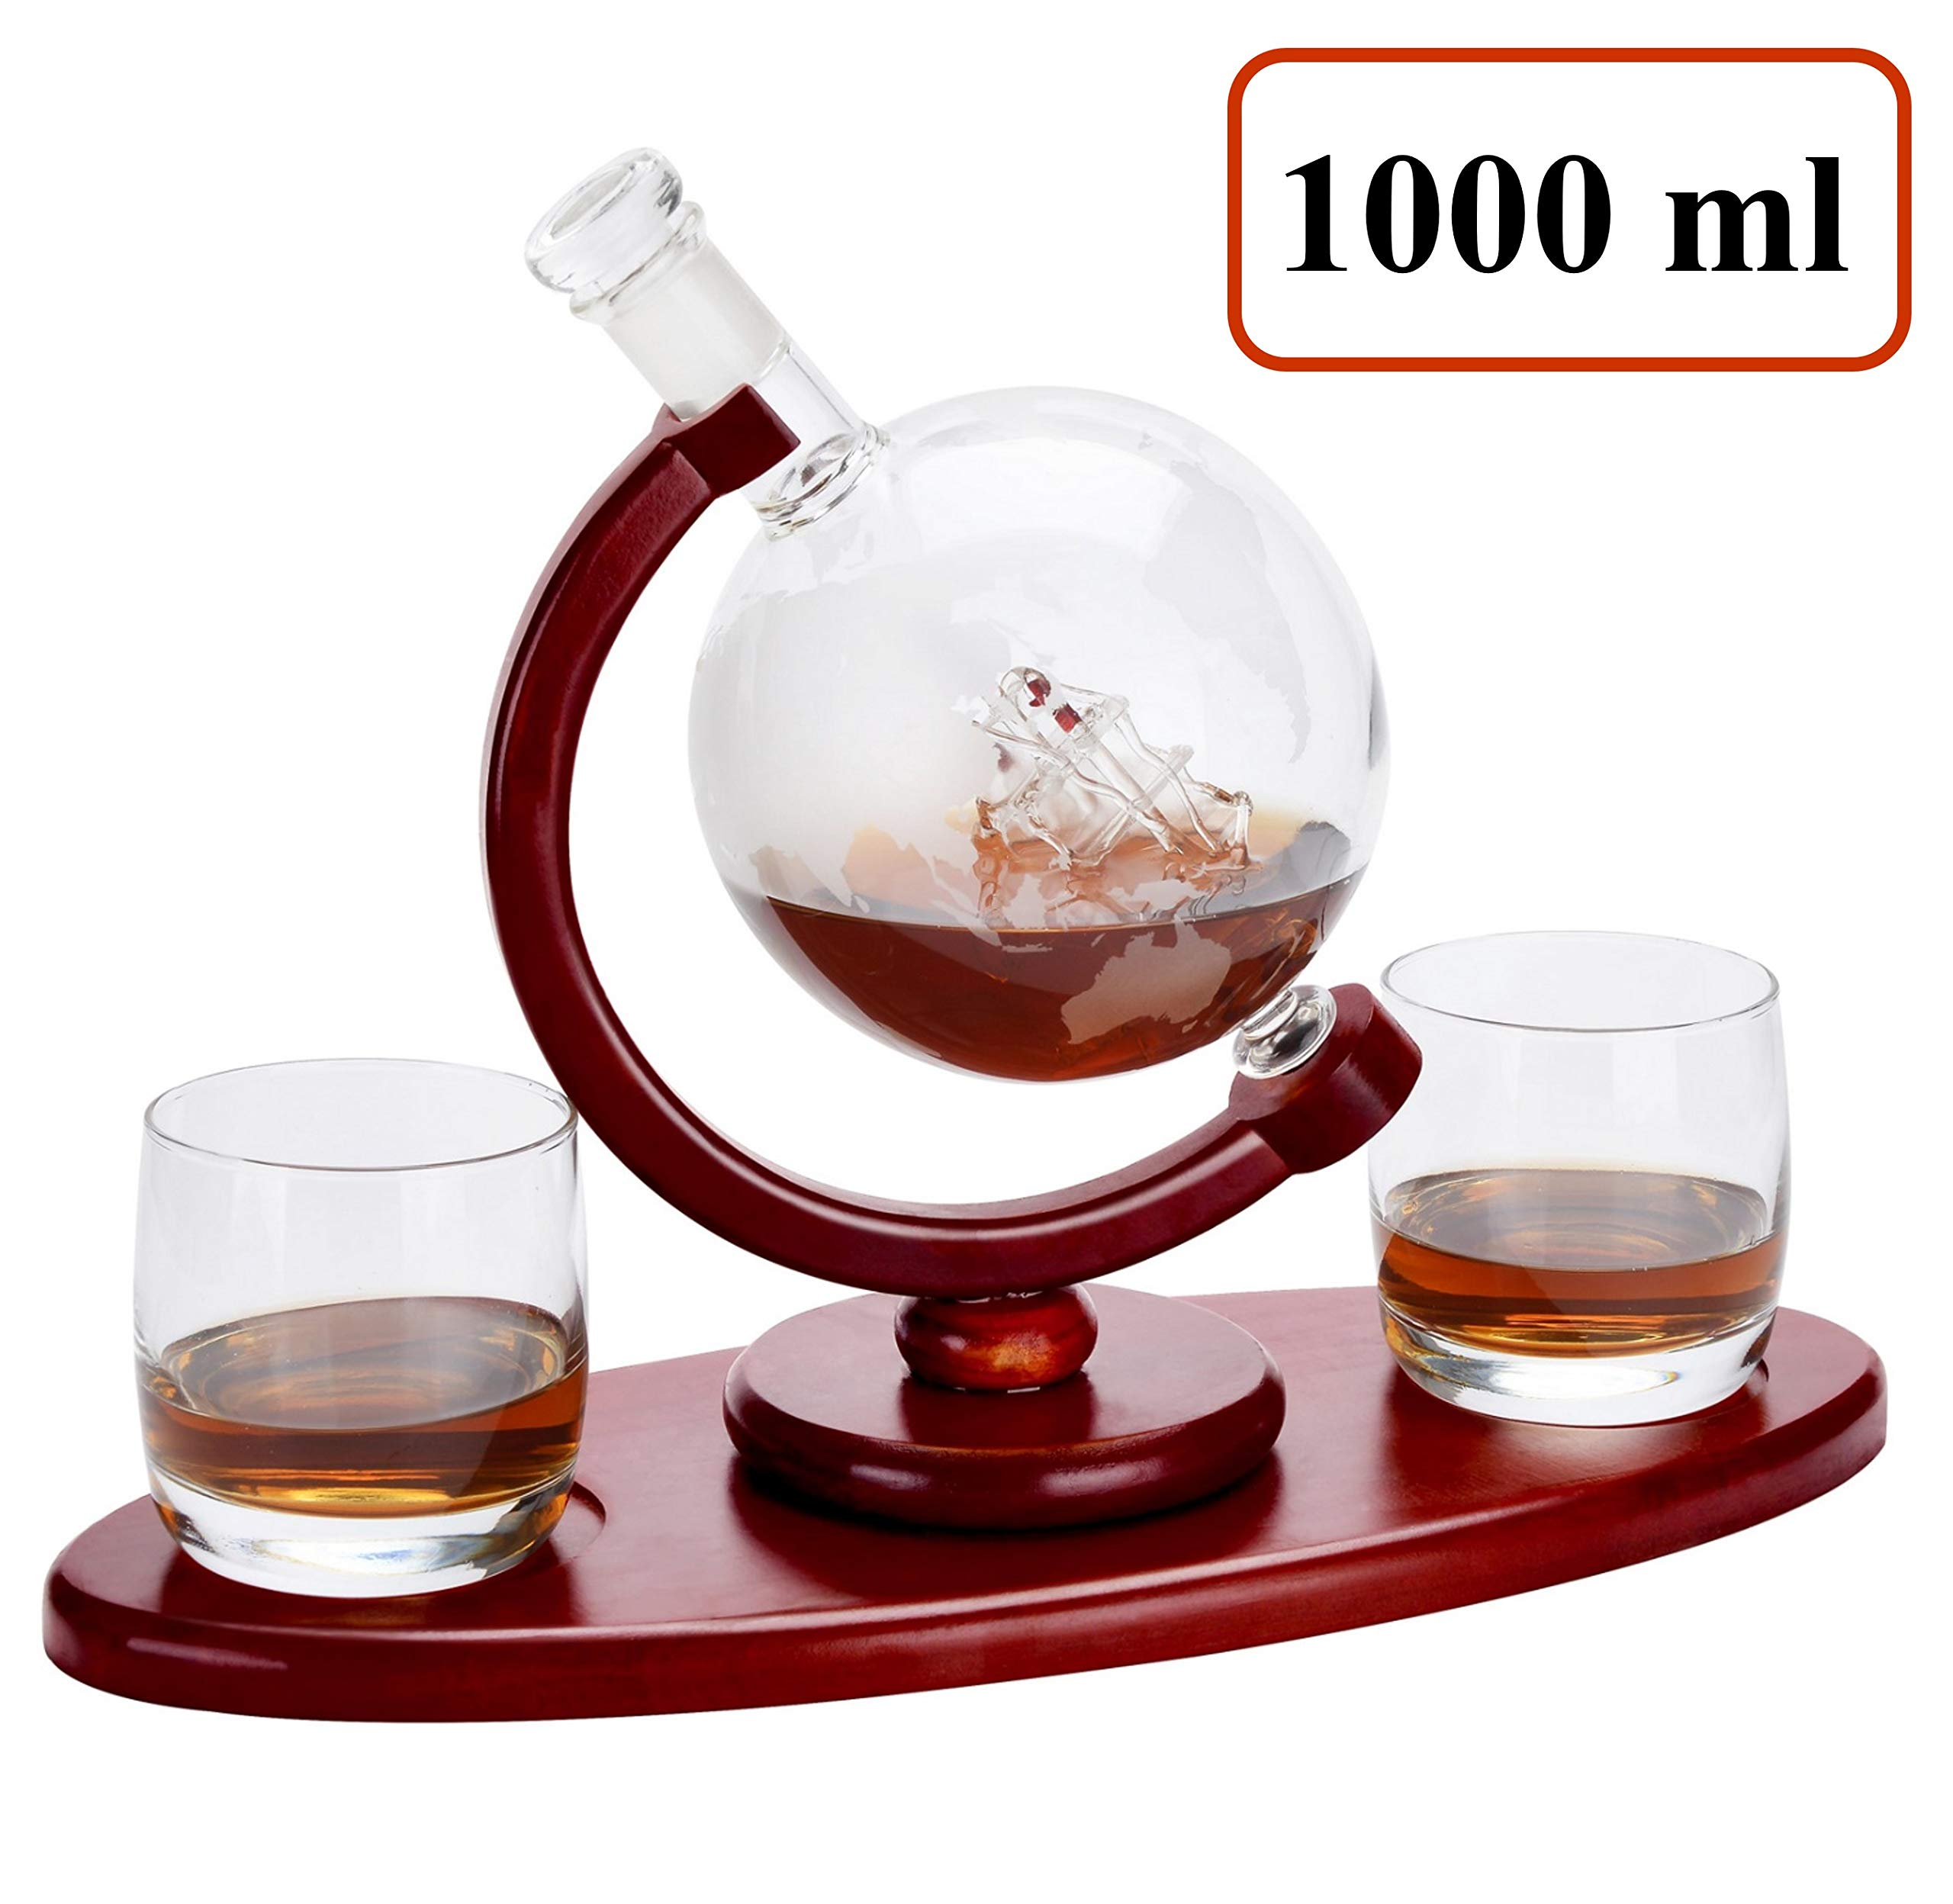 Mecete Whiskey Decanter Globe set 1000 ml with 2 Etched Whisky Glasses-HOME BAR DECOR - for Liquor, Scotch, Bourbon, Vodka, Water, Iced Tea and Juice - 1000ml